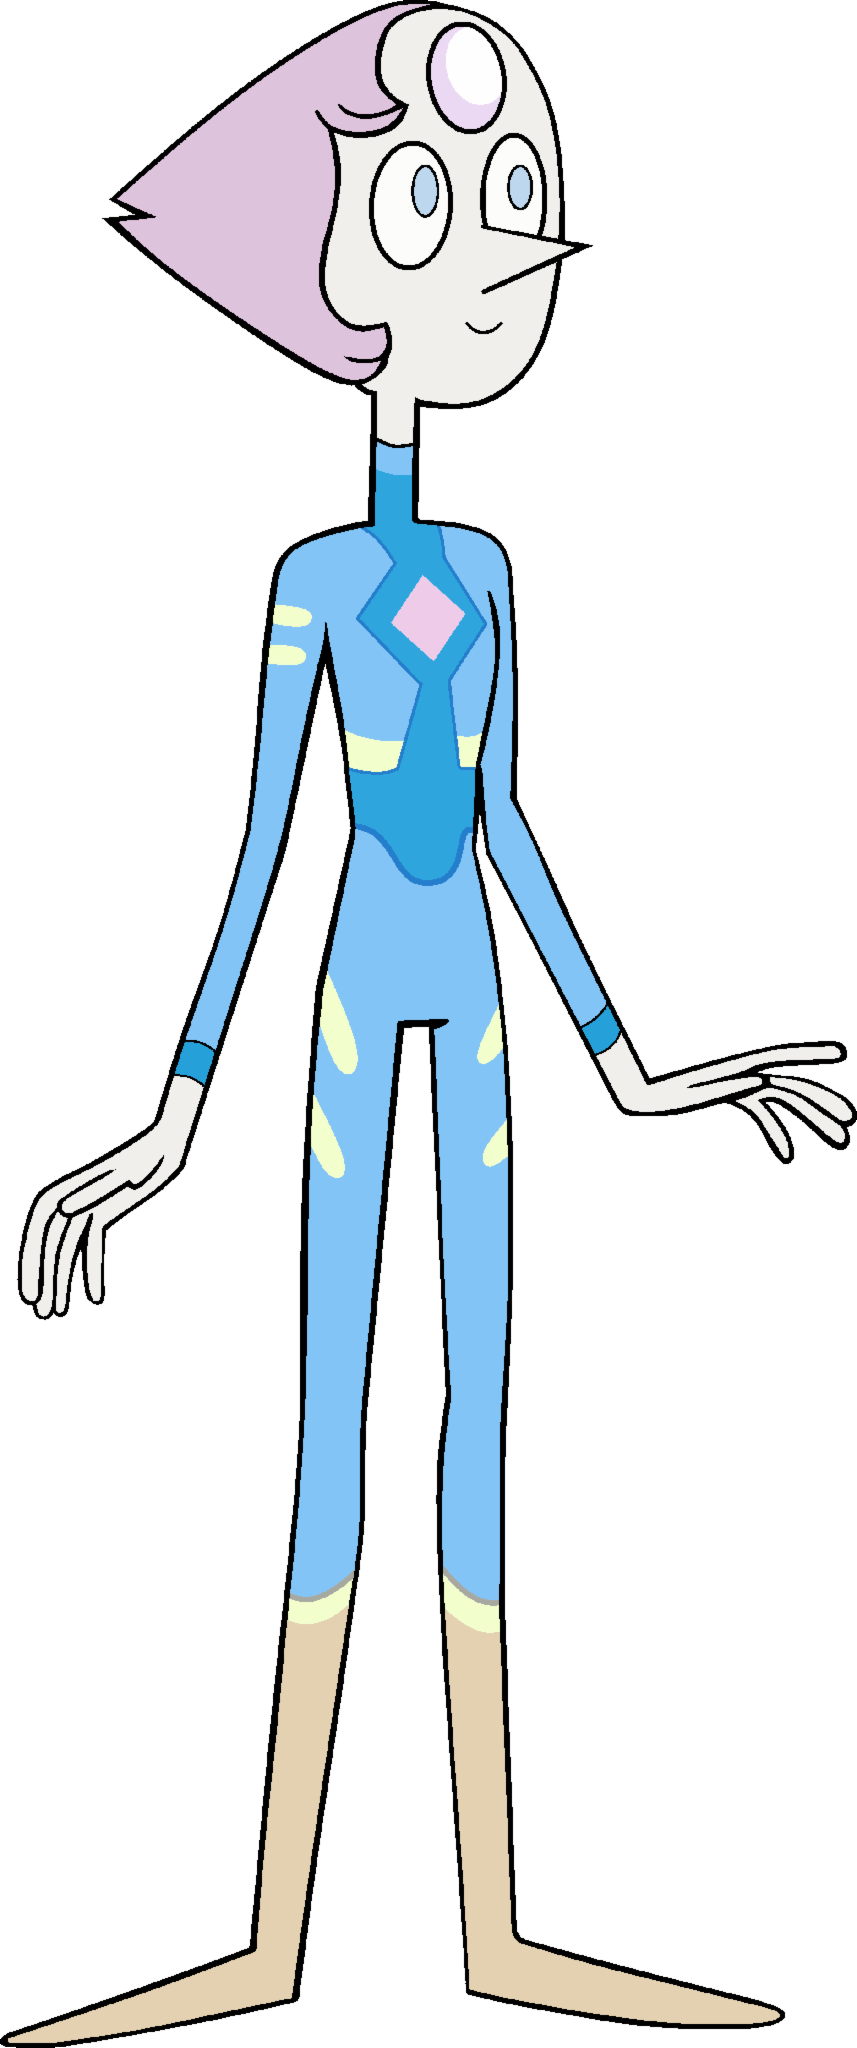 In what episode did Pearl wear this (tacky) Outfit?